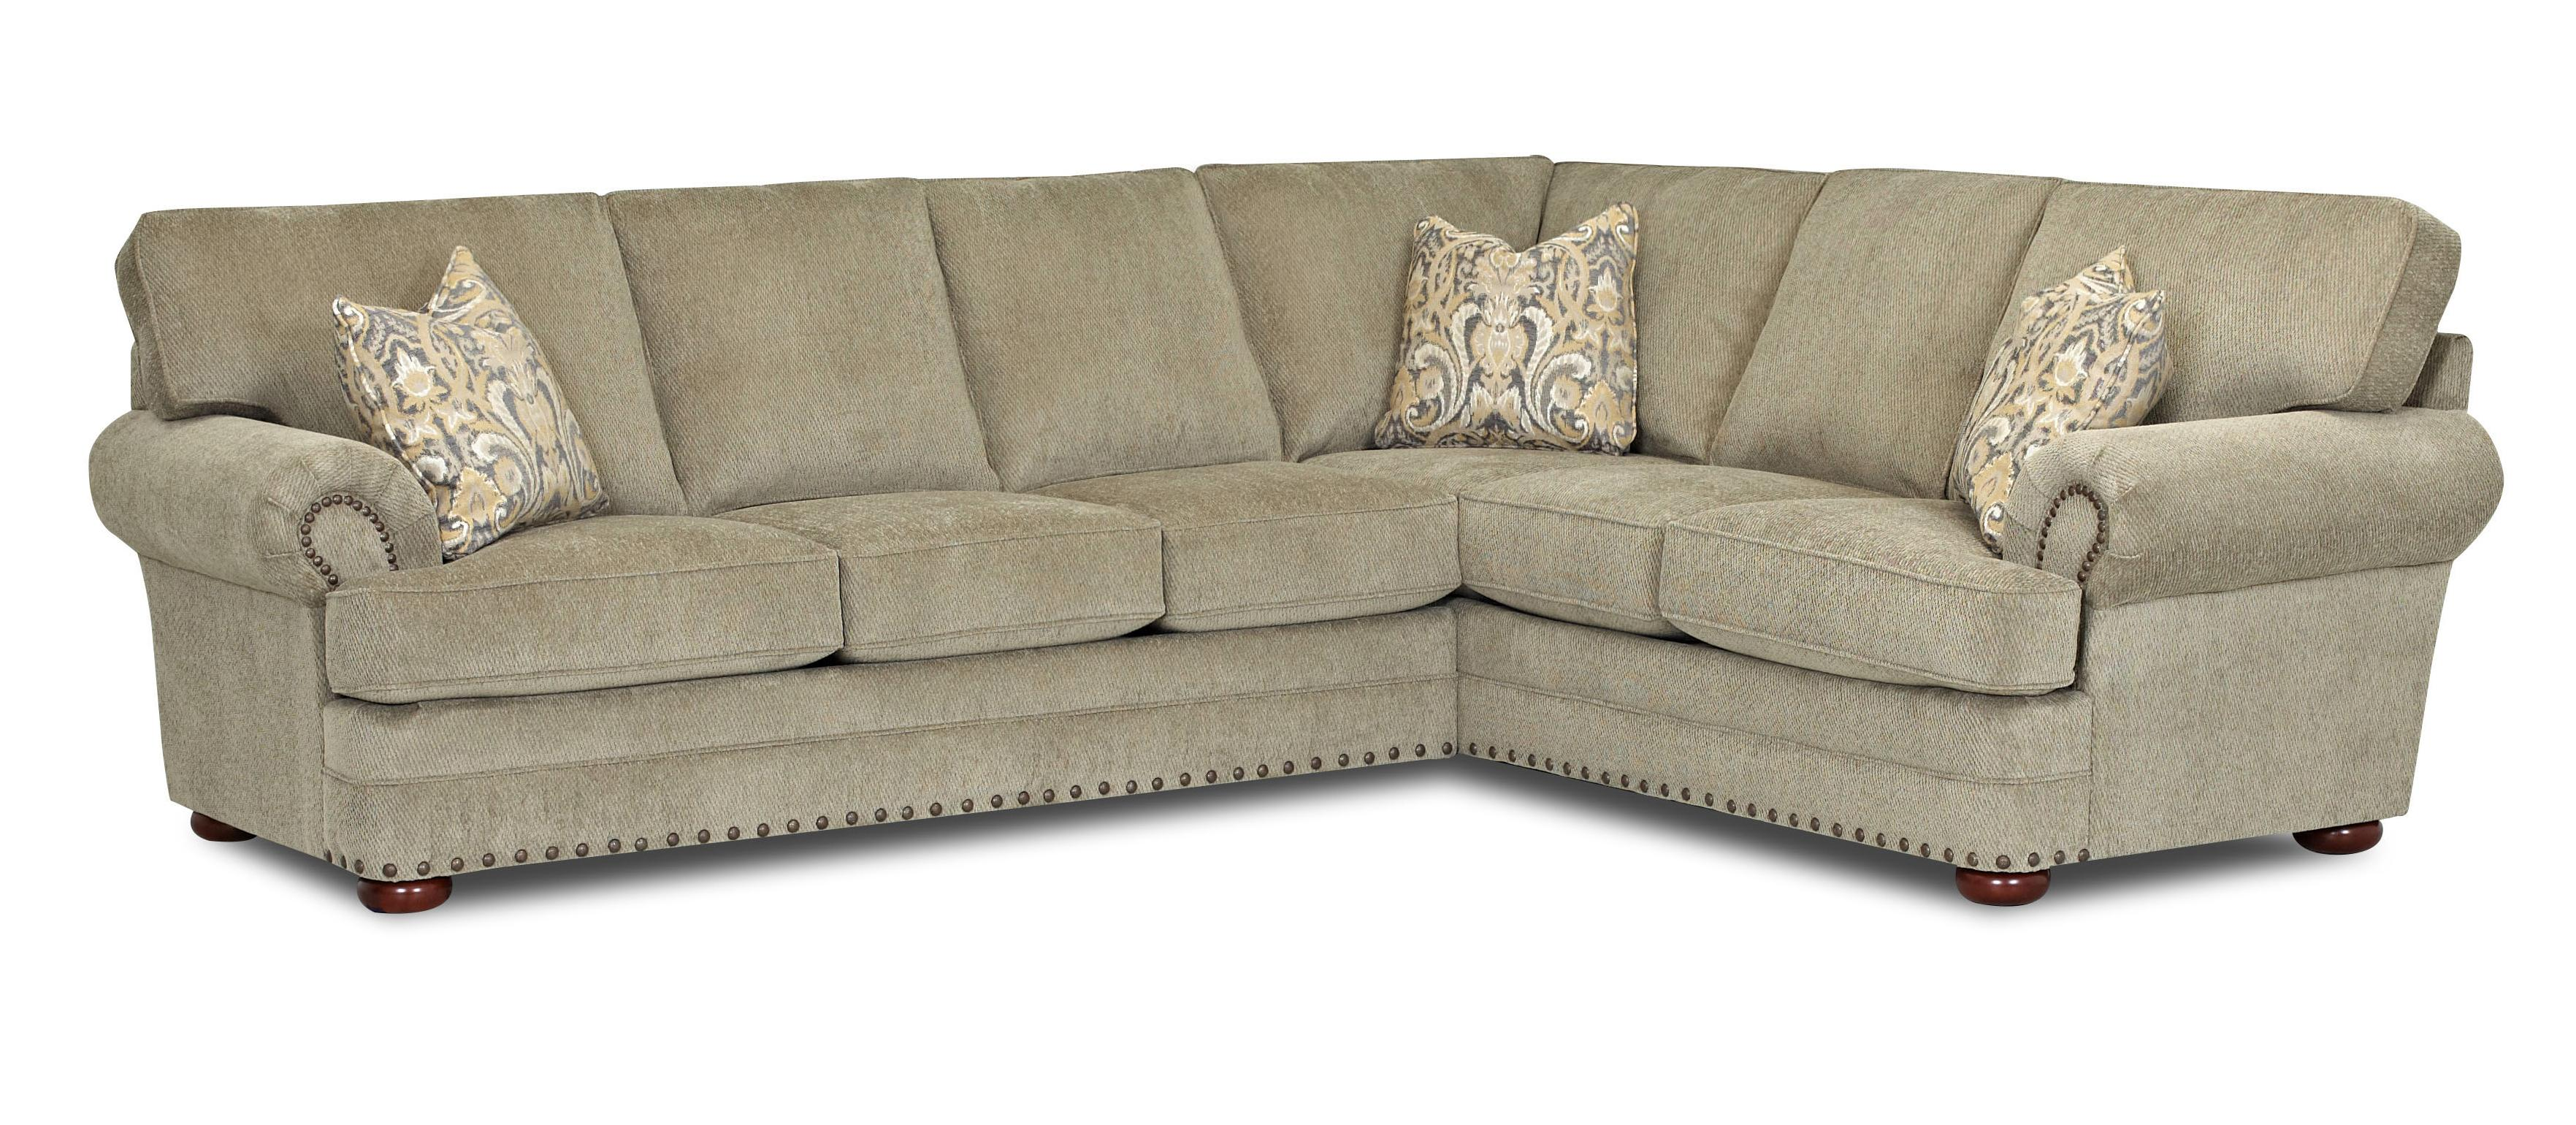 Traditional 2 piece sectional sofa by klaussner wolf and for Traditional sectional